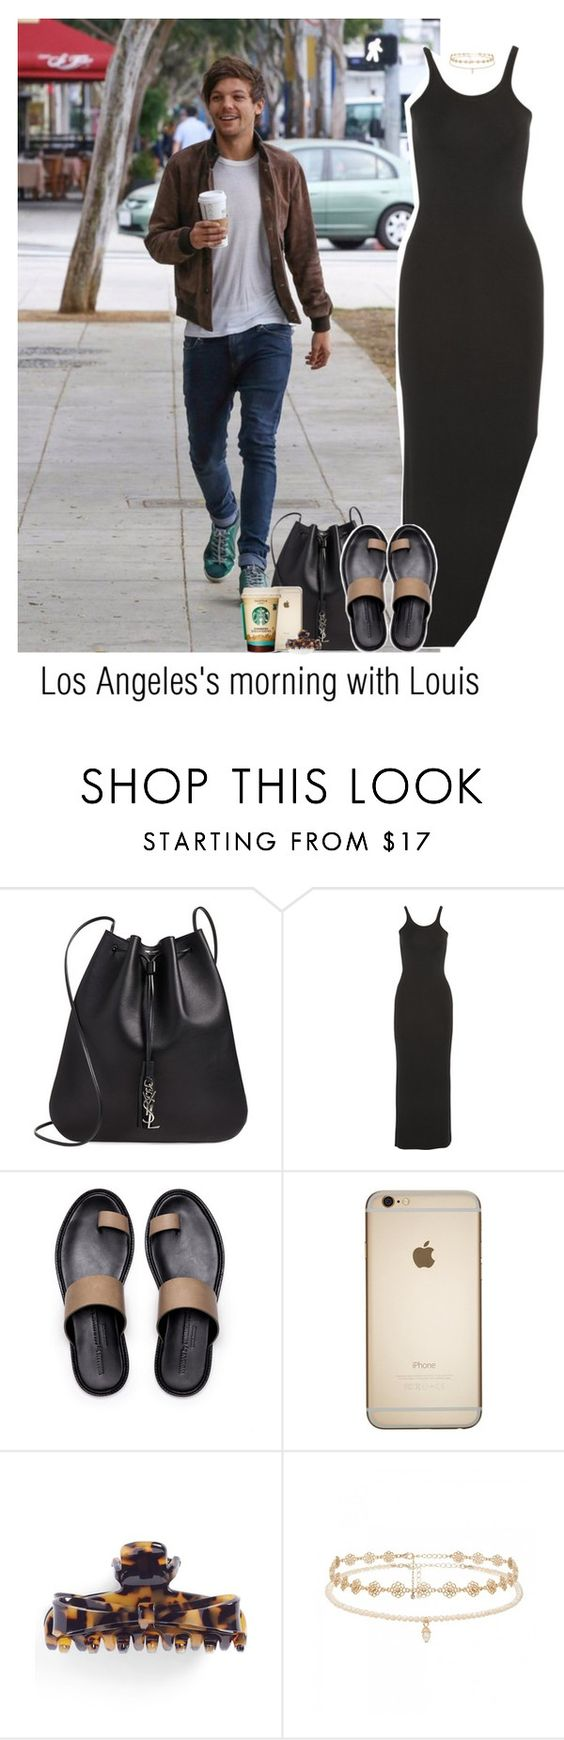 """""""Los Angeles's morning with Louis"""" by reasongirl ❤ liked on Polyvore featuring Yves Saint Laurent, T By Alexander Wang, L. Erickson and Forever New"""